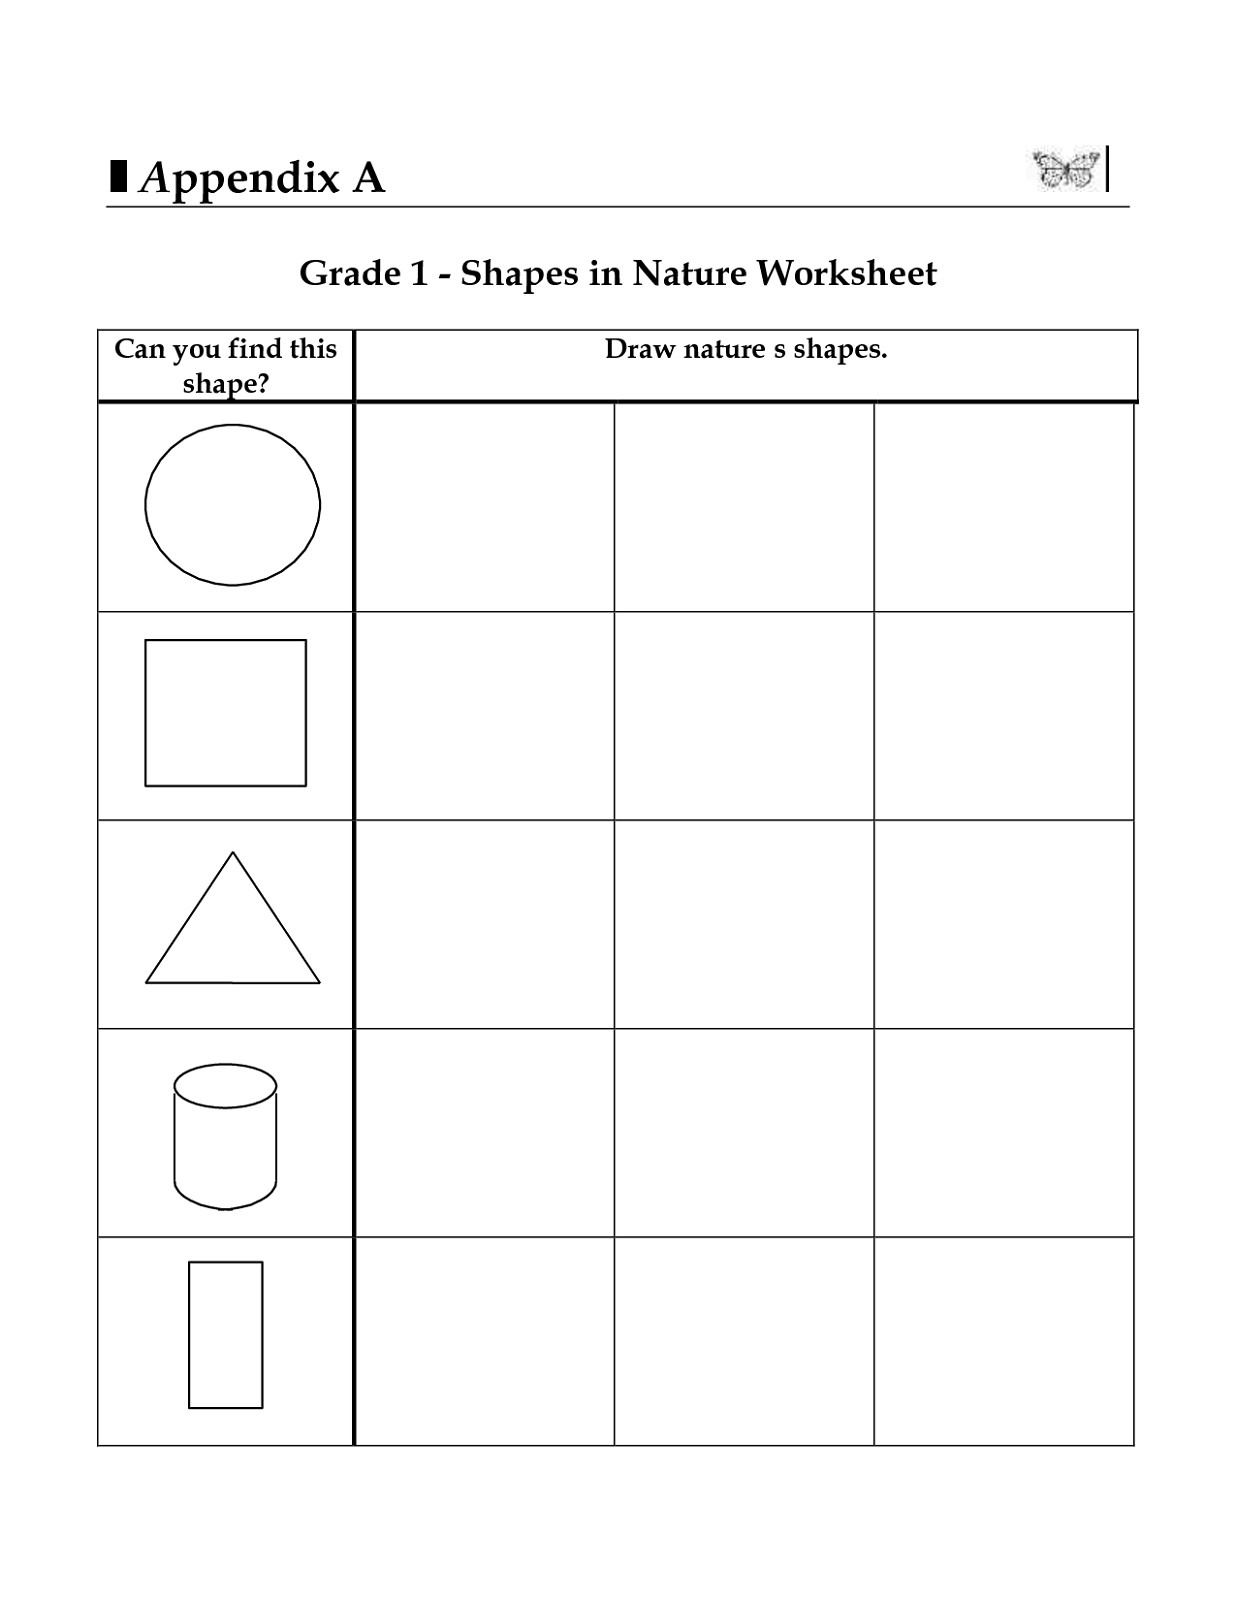 Grade 1 Worksheets For Learning Activity